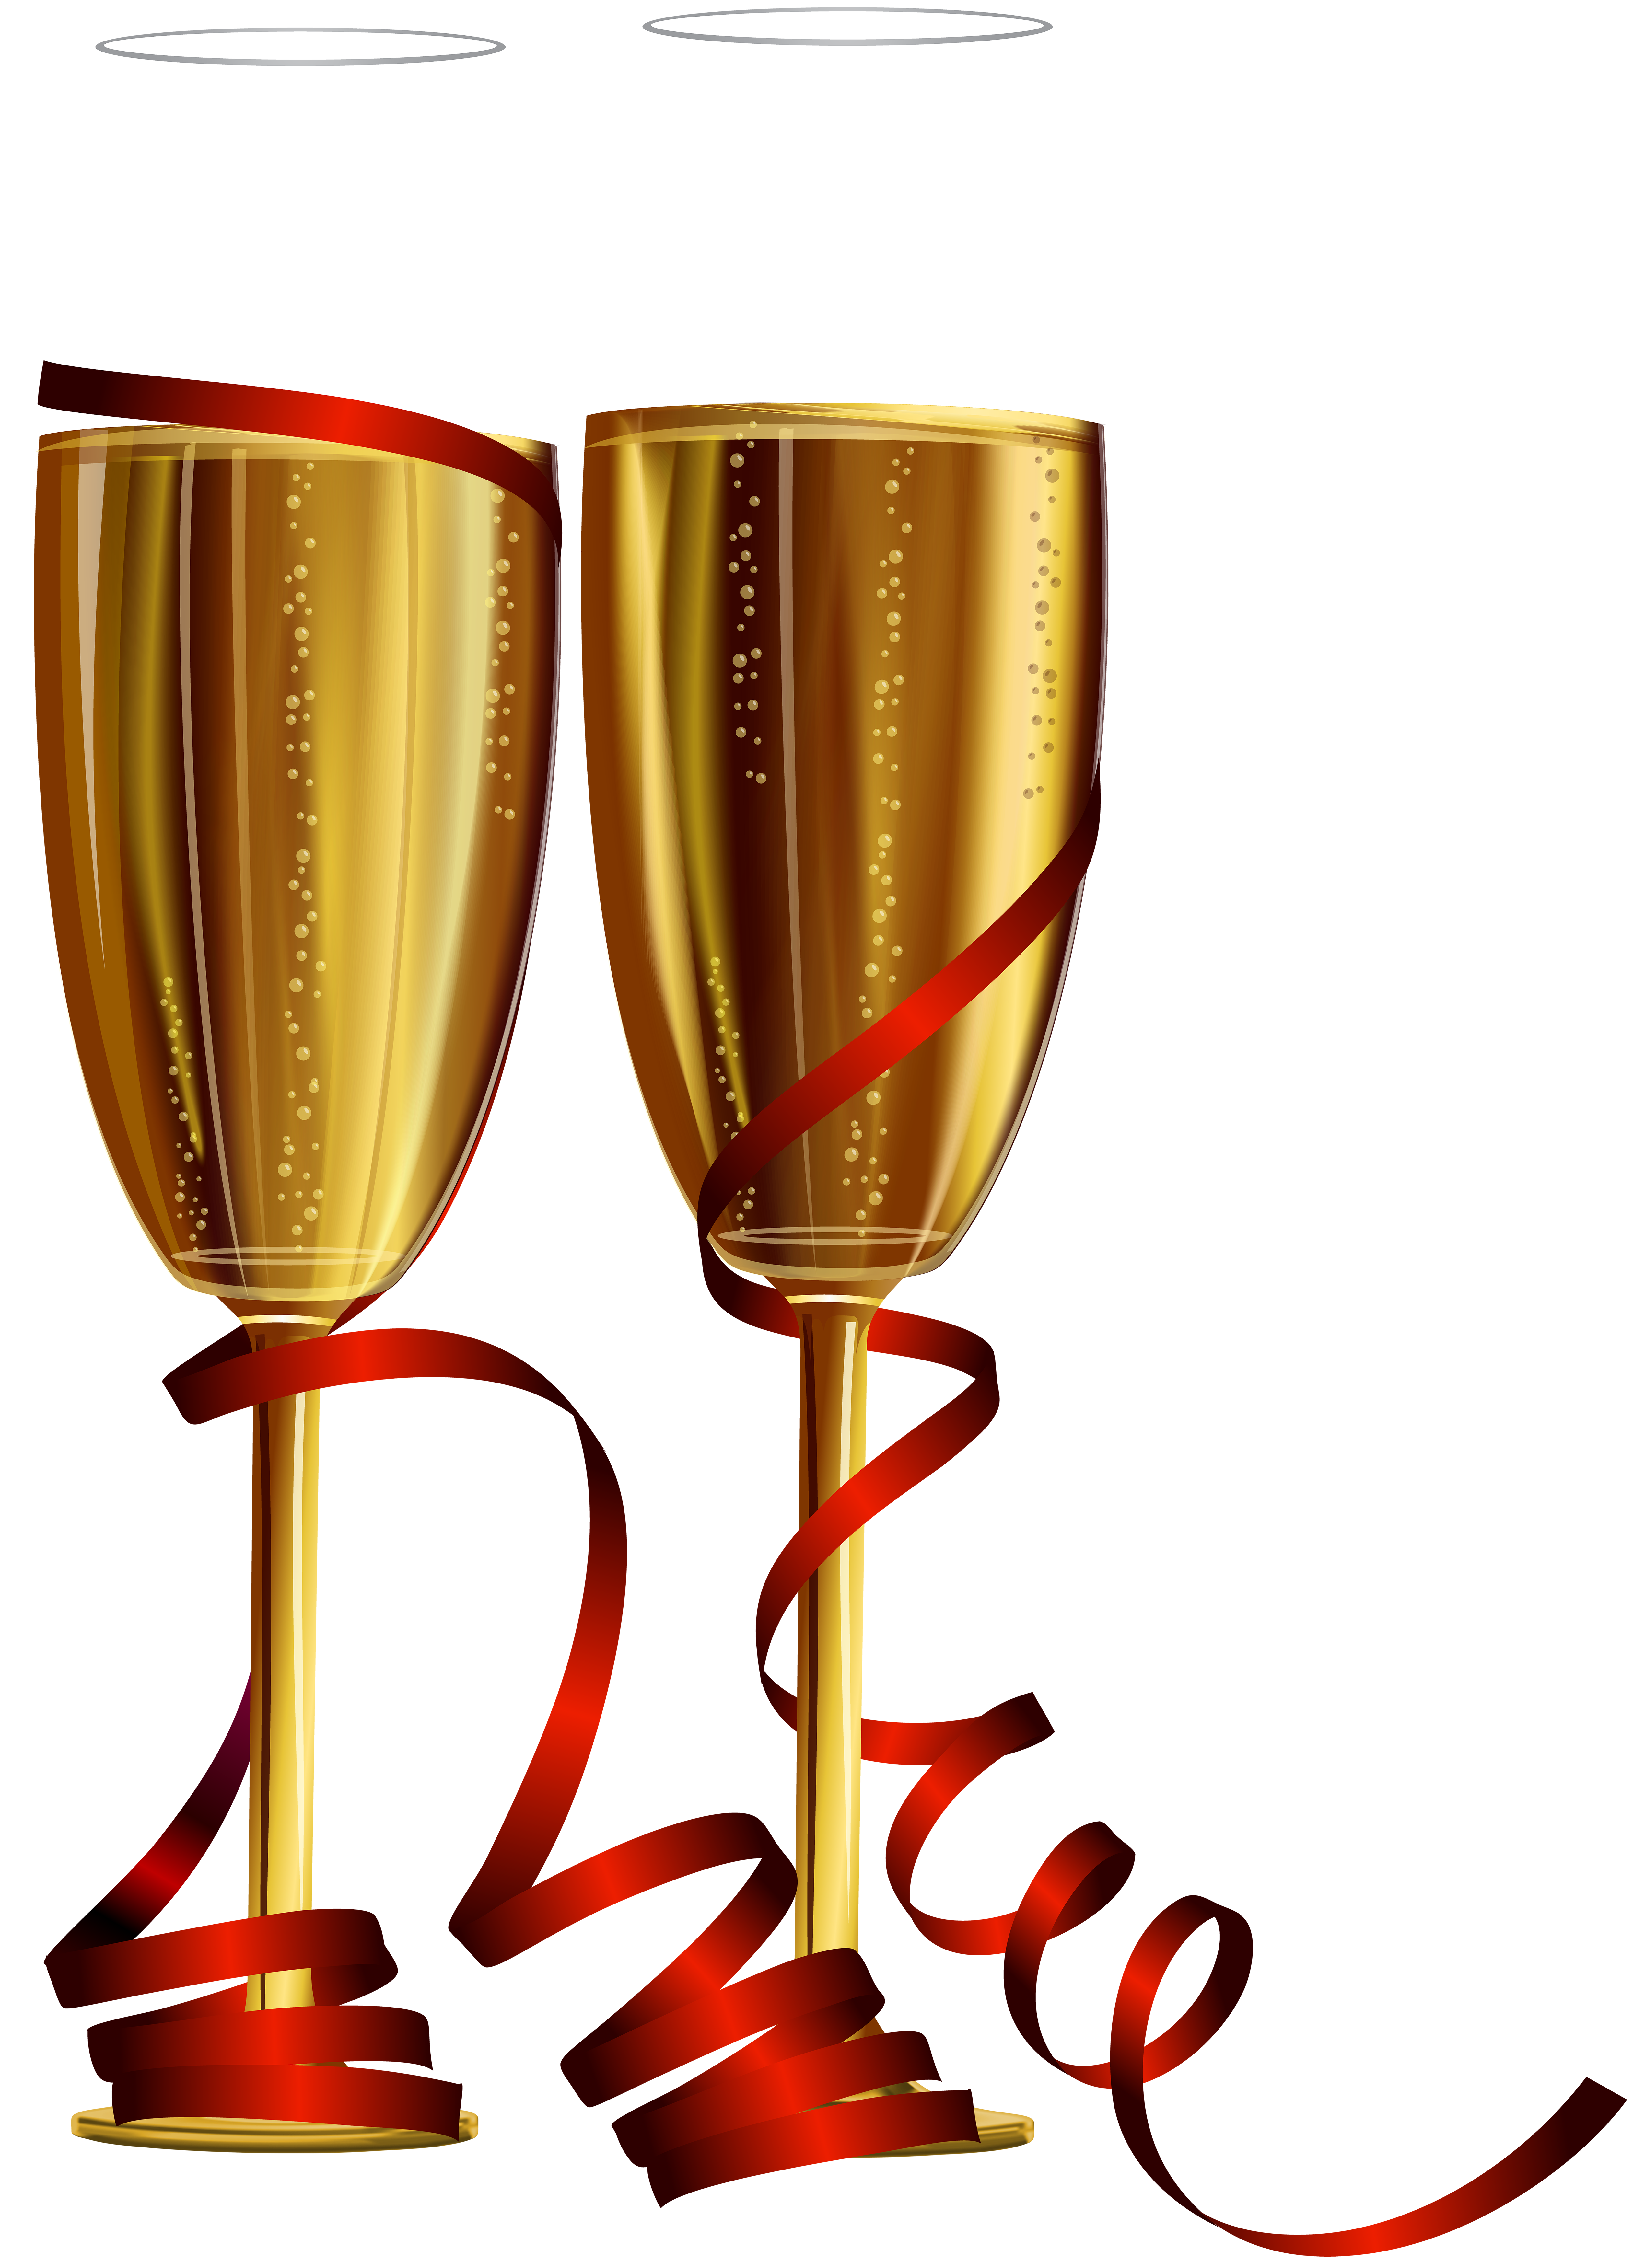 Anniversary clipart champagne glass. New year glasses png